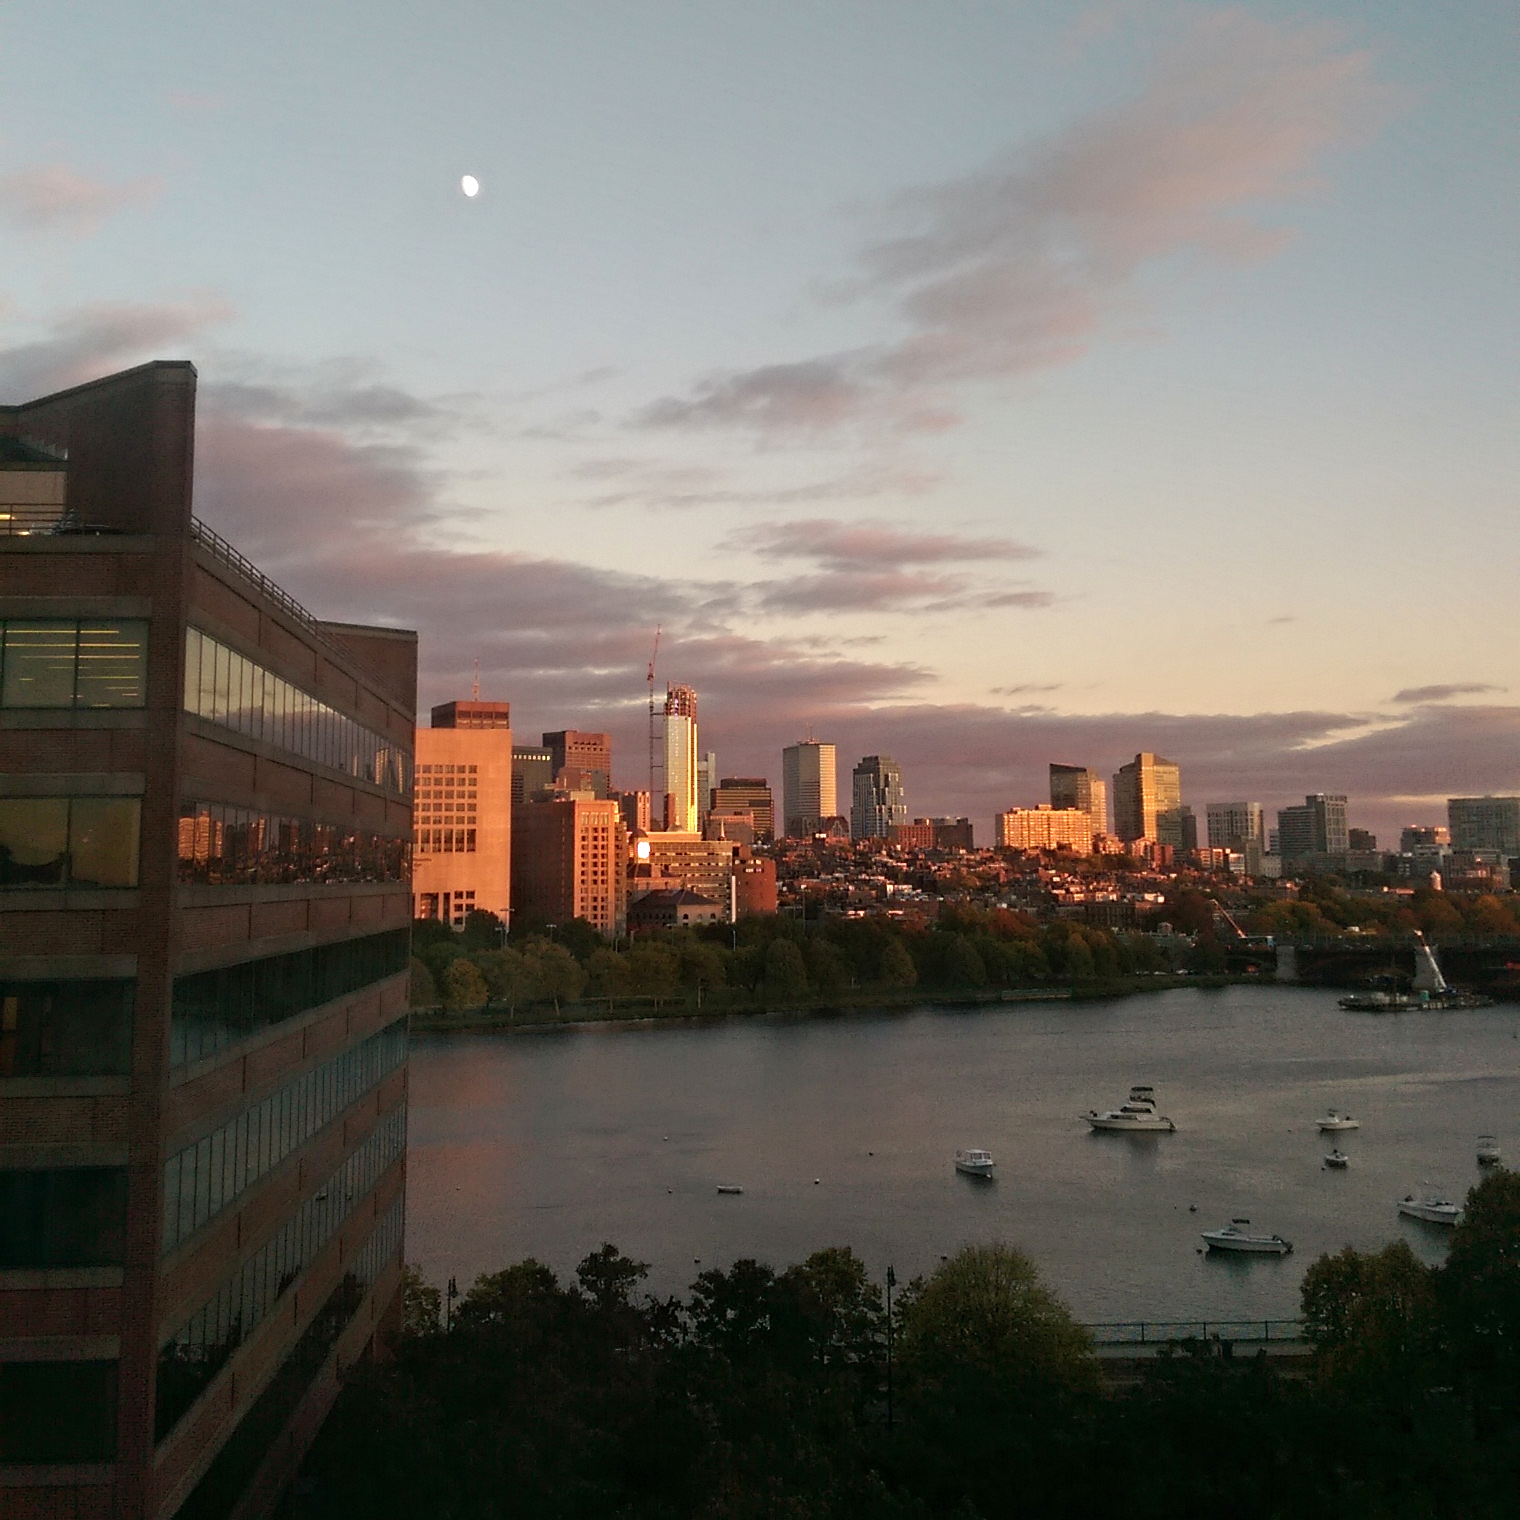 Added Bonus #2: Sunsets have been super awesome lately. The moon was also out today which was super cool.